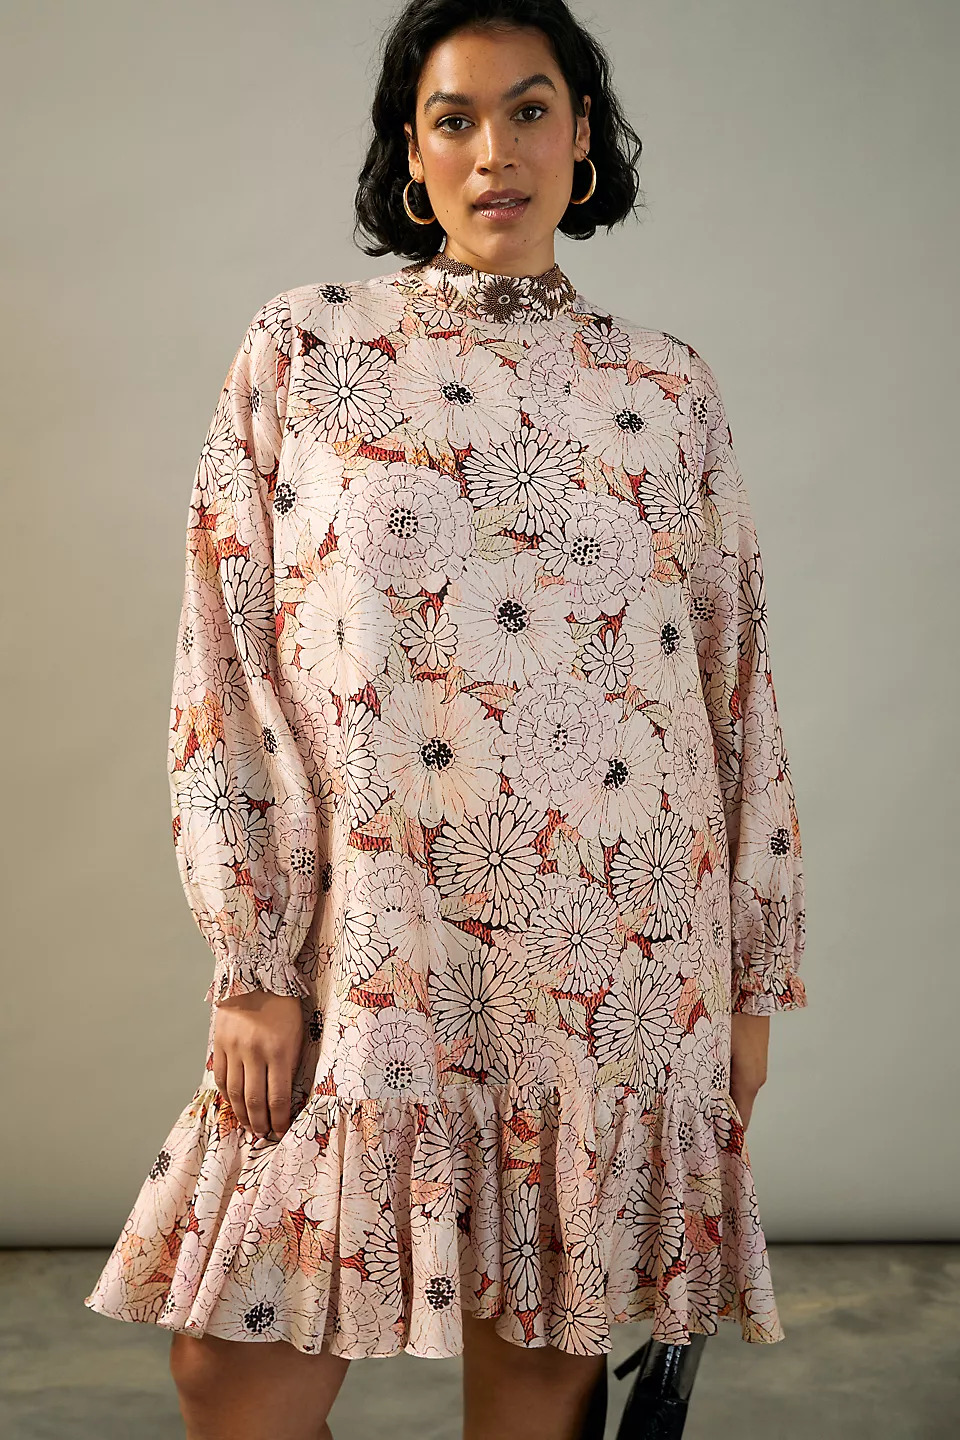 floral tunic to wear to a spring wedding